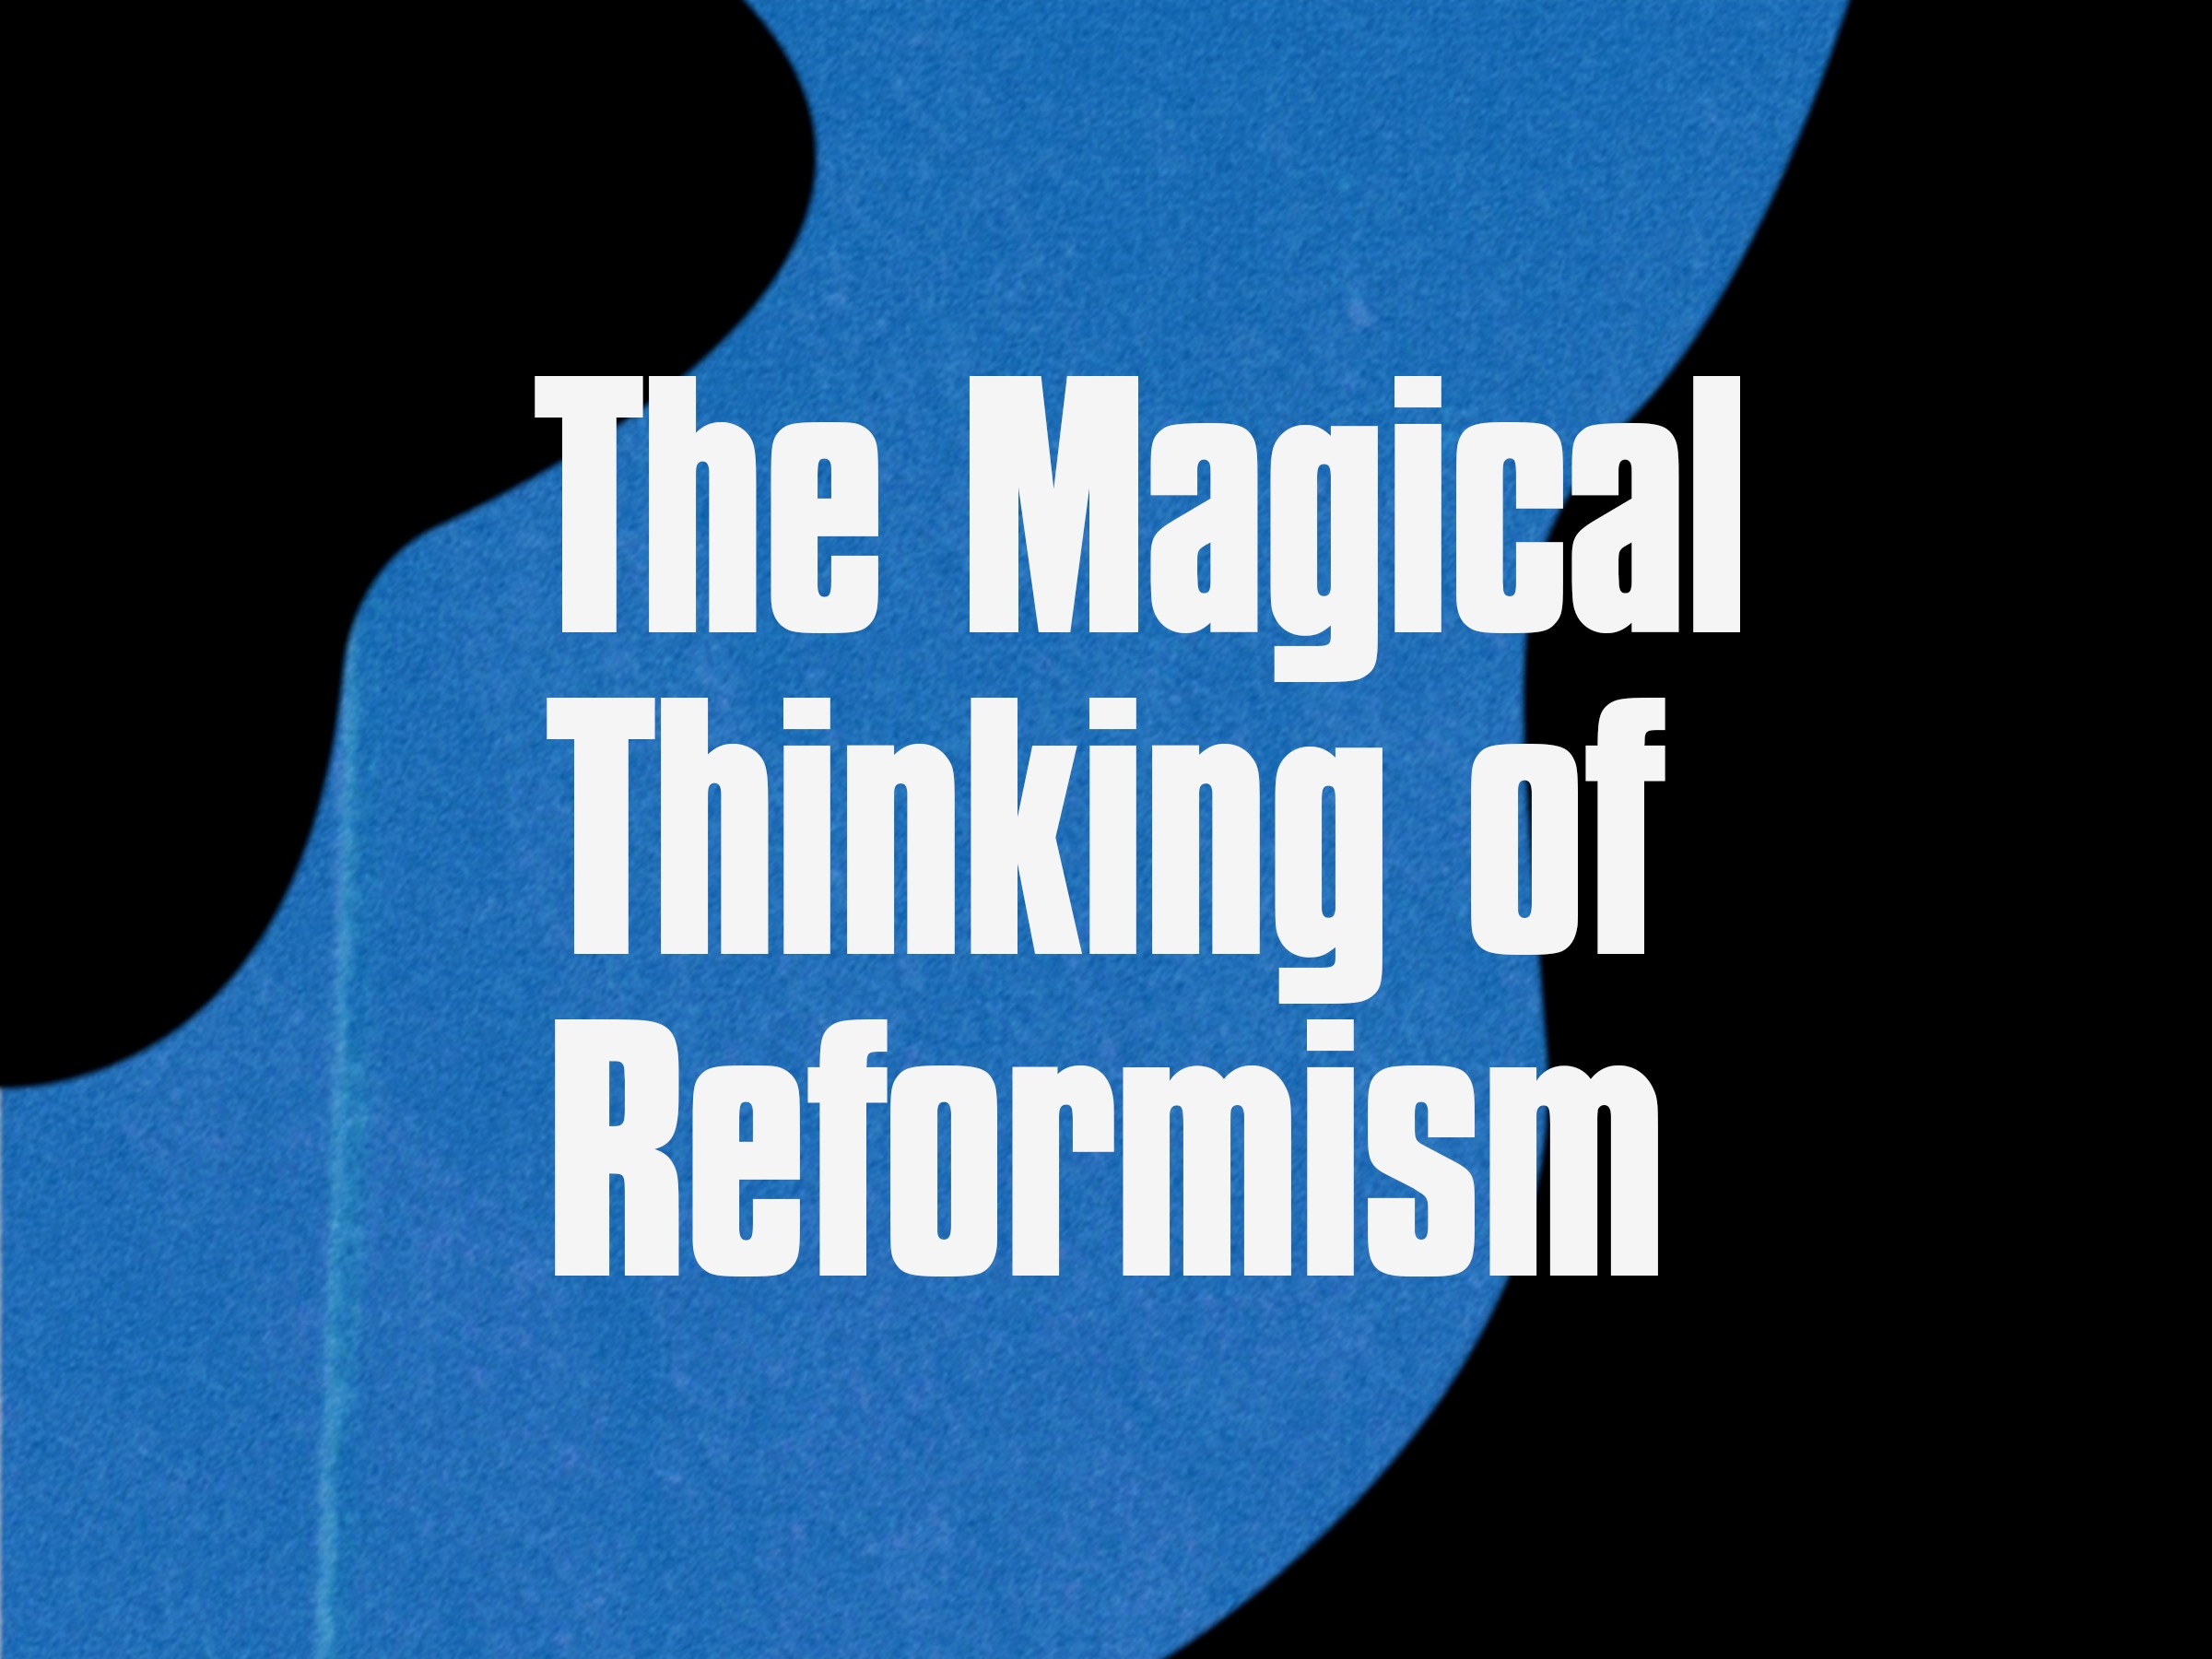 The Magical Thinking of Reformism